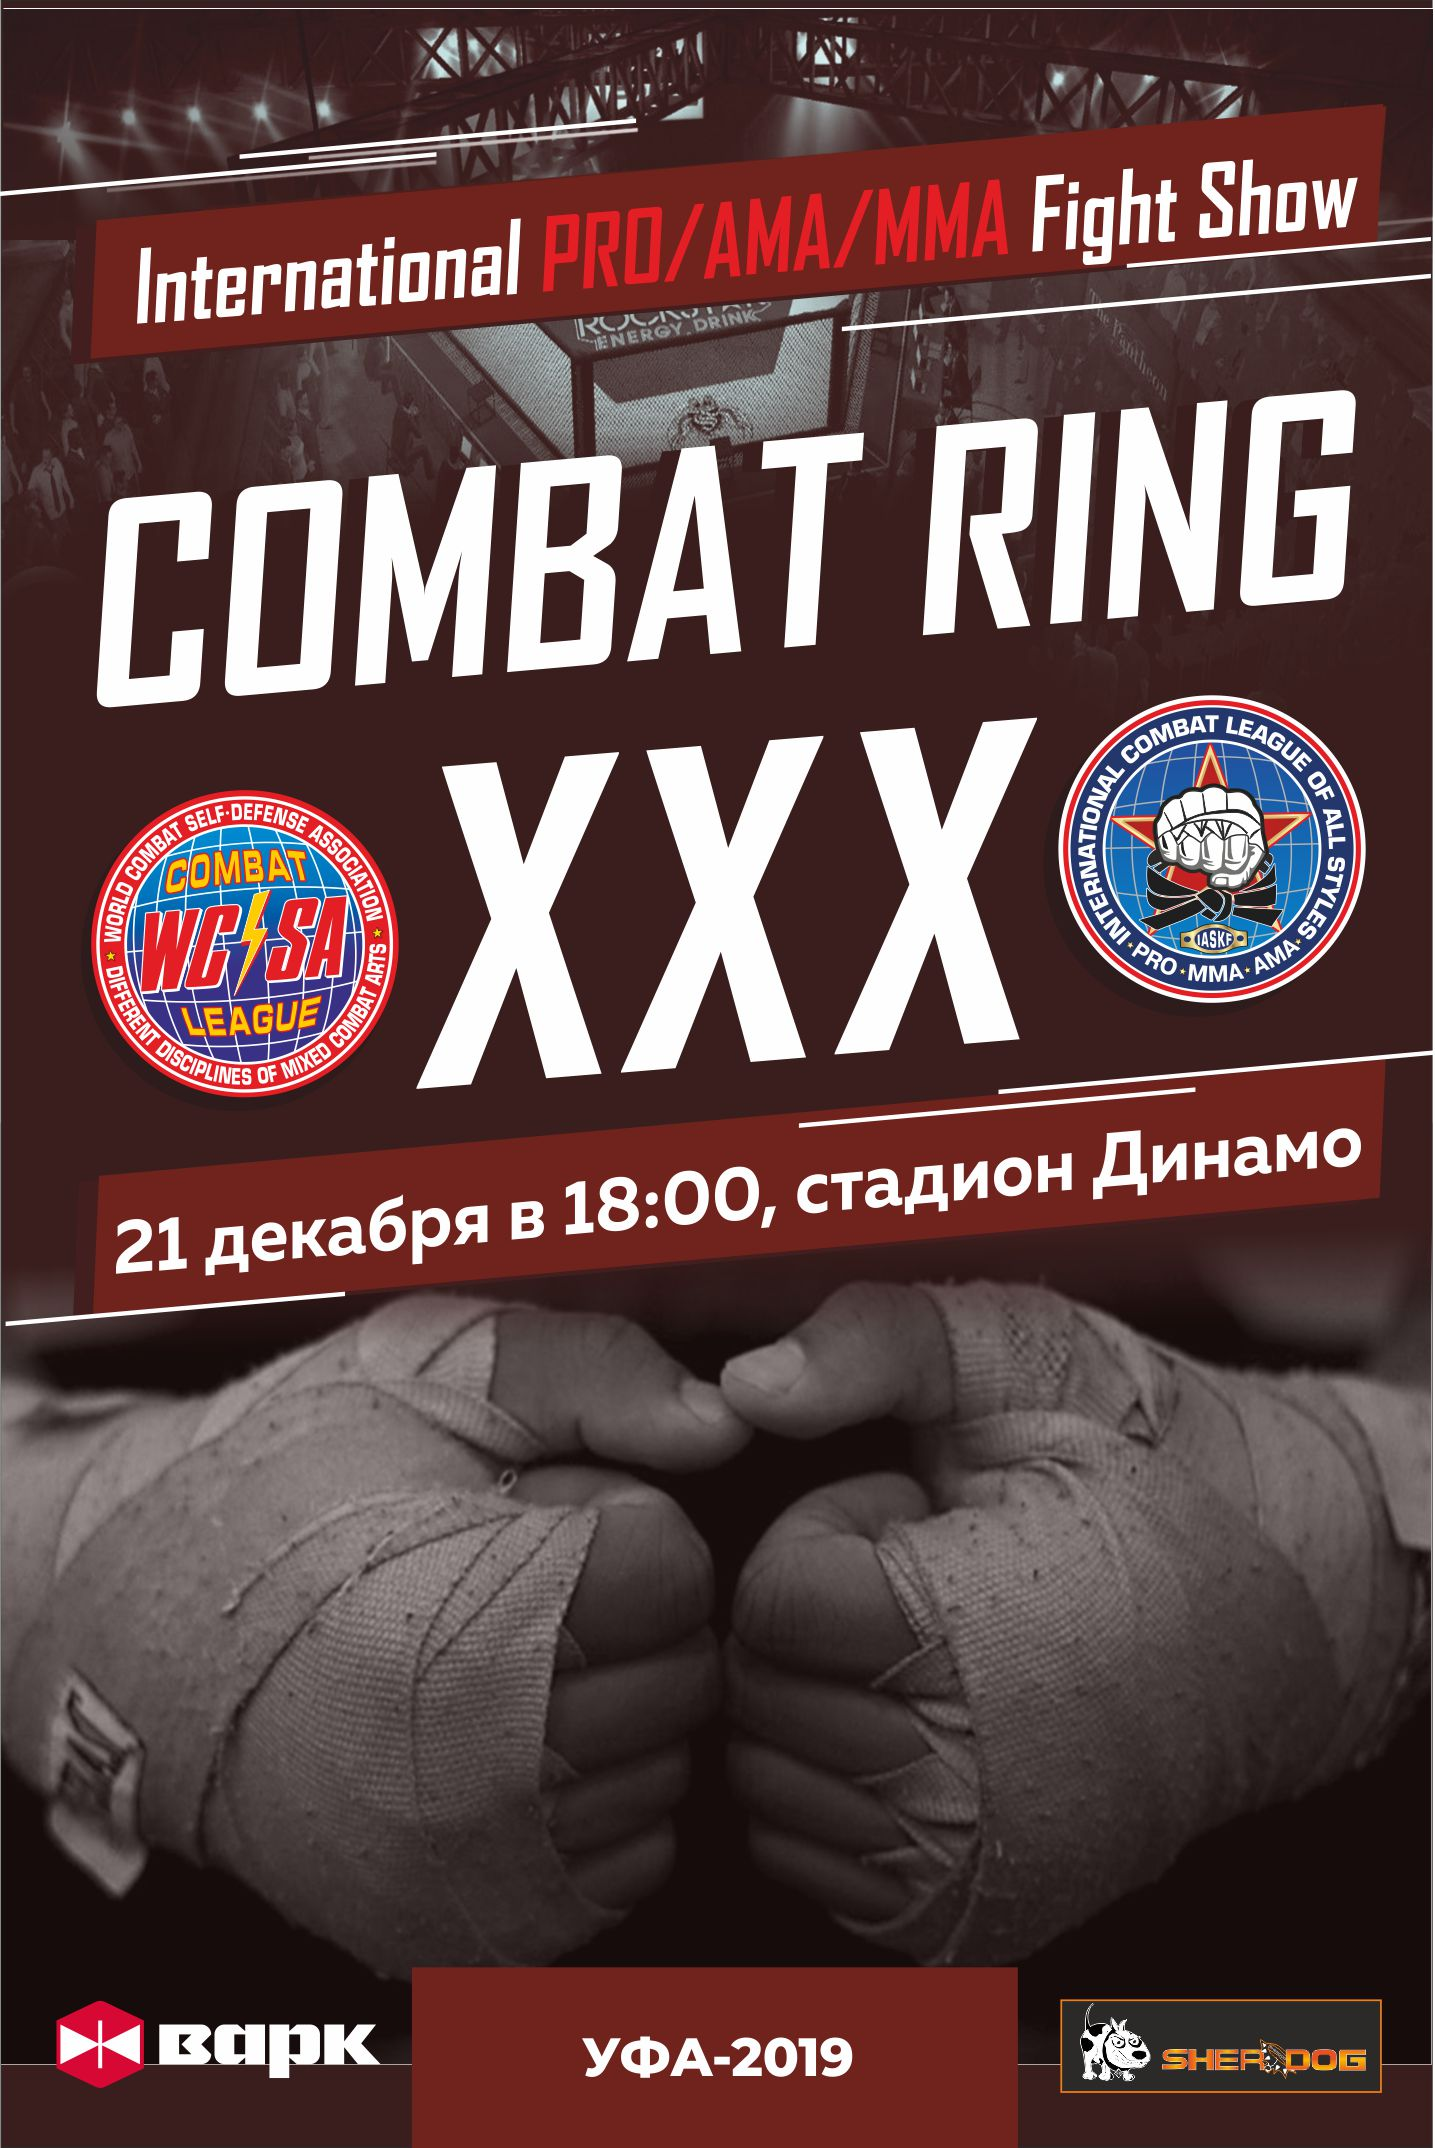 http://combatsd.com/images/upload/Combat%20Ring%20XXX.jpg